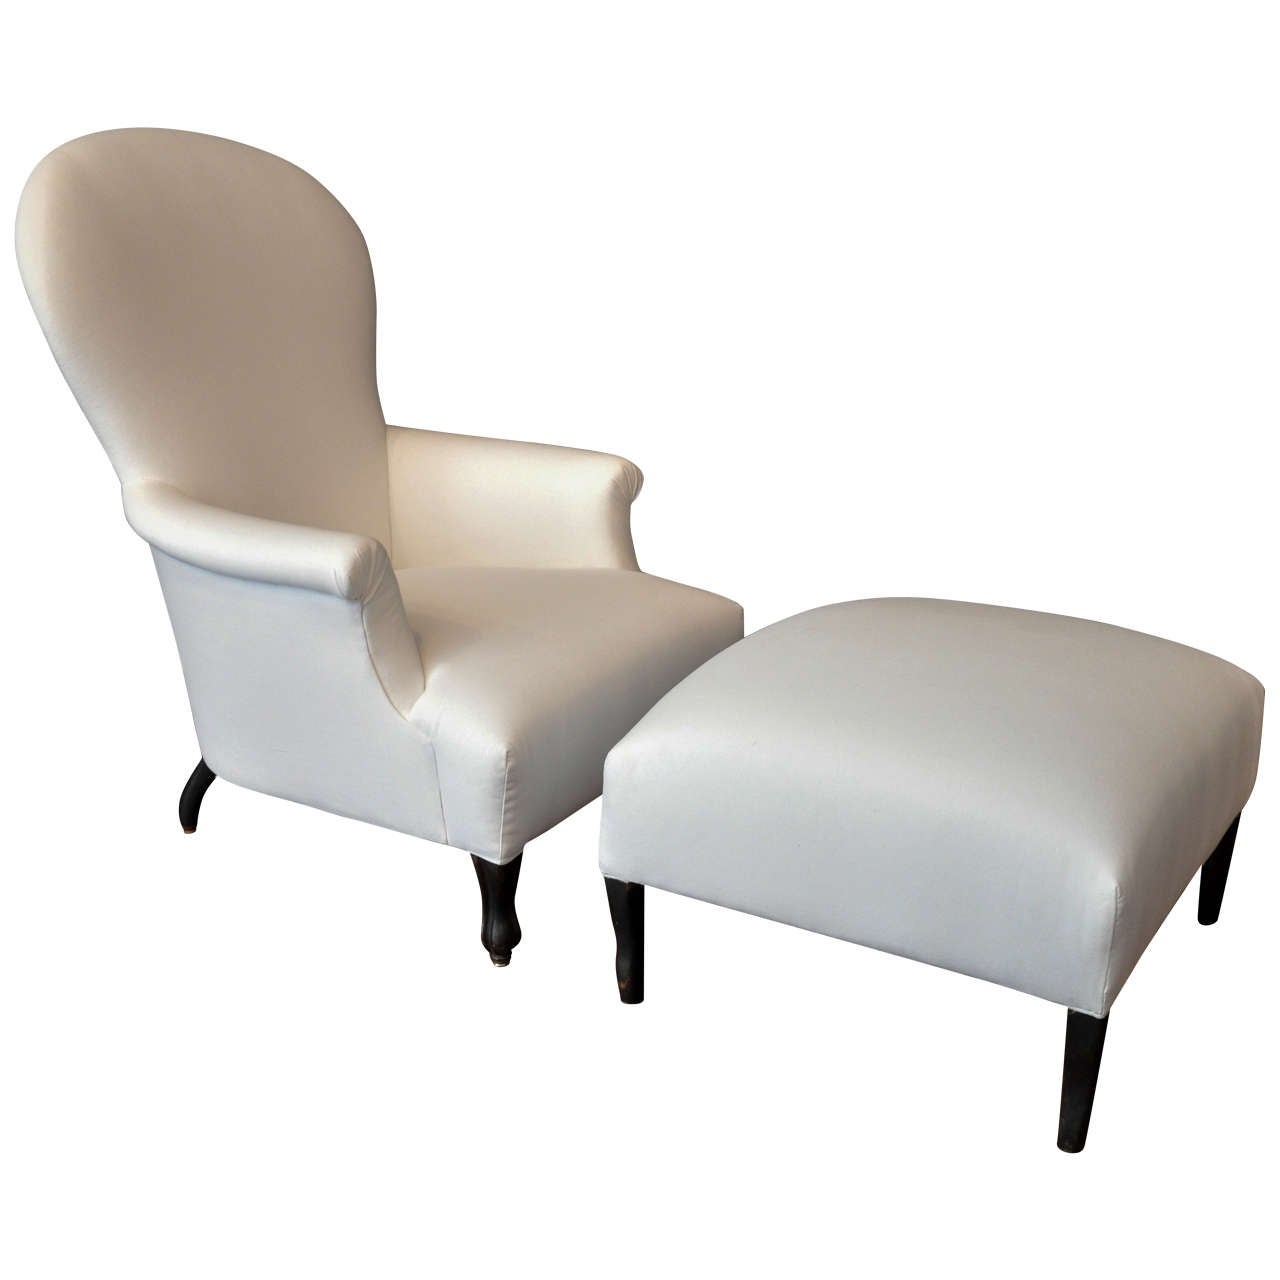 Funky french chaise lounge chair and ottoman at 1stdibs for Chaise and ottoman